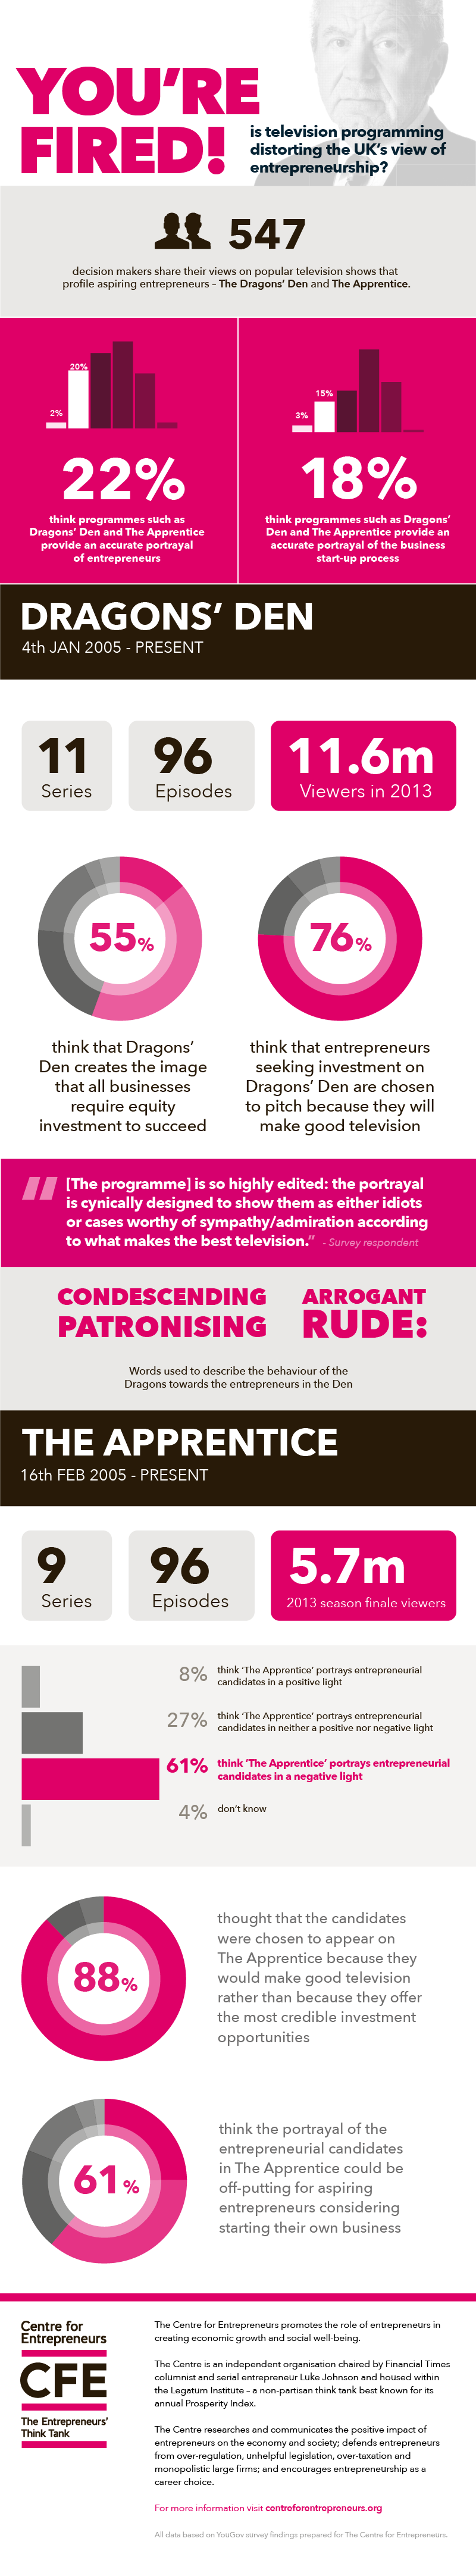 CFE Entrepreneurs in the media infographic